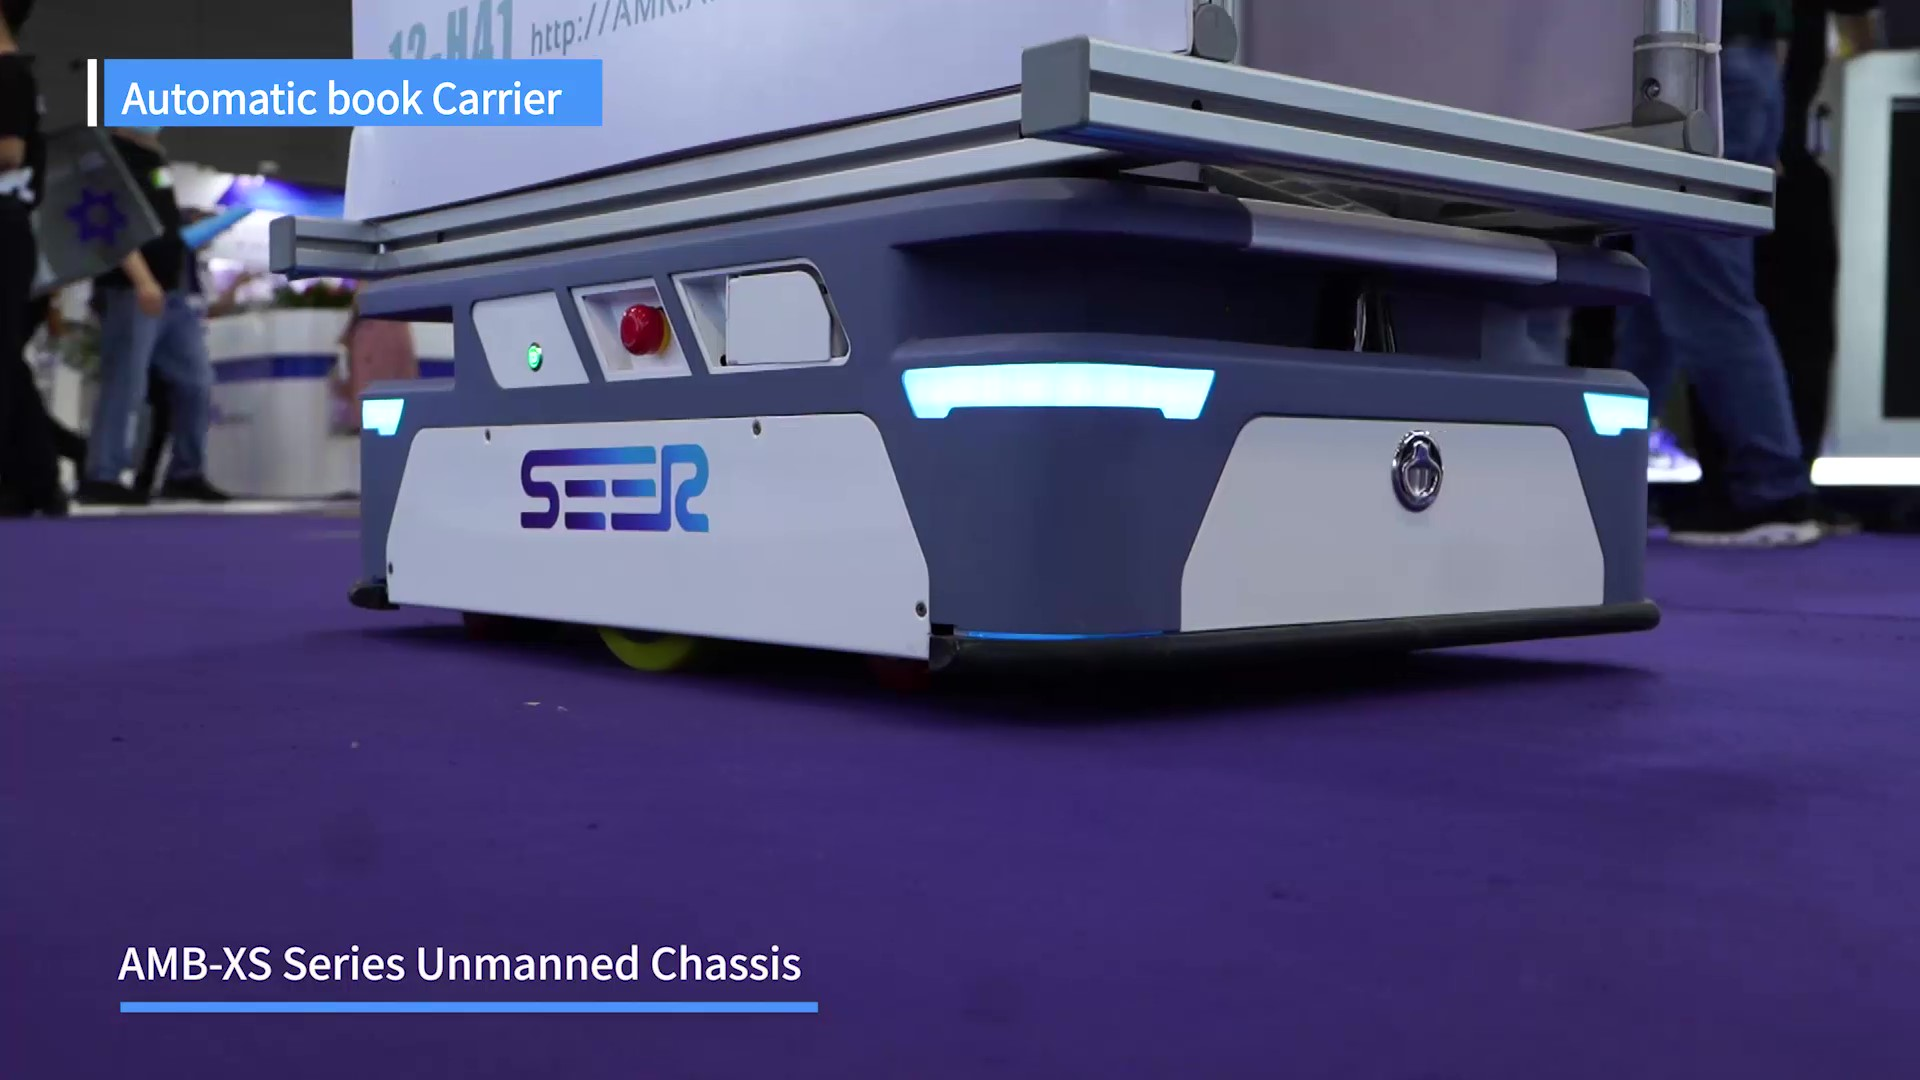 Automatic Book Carrier